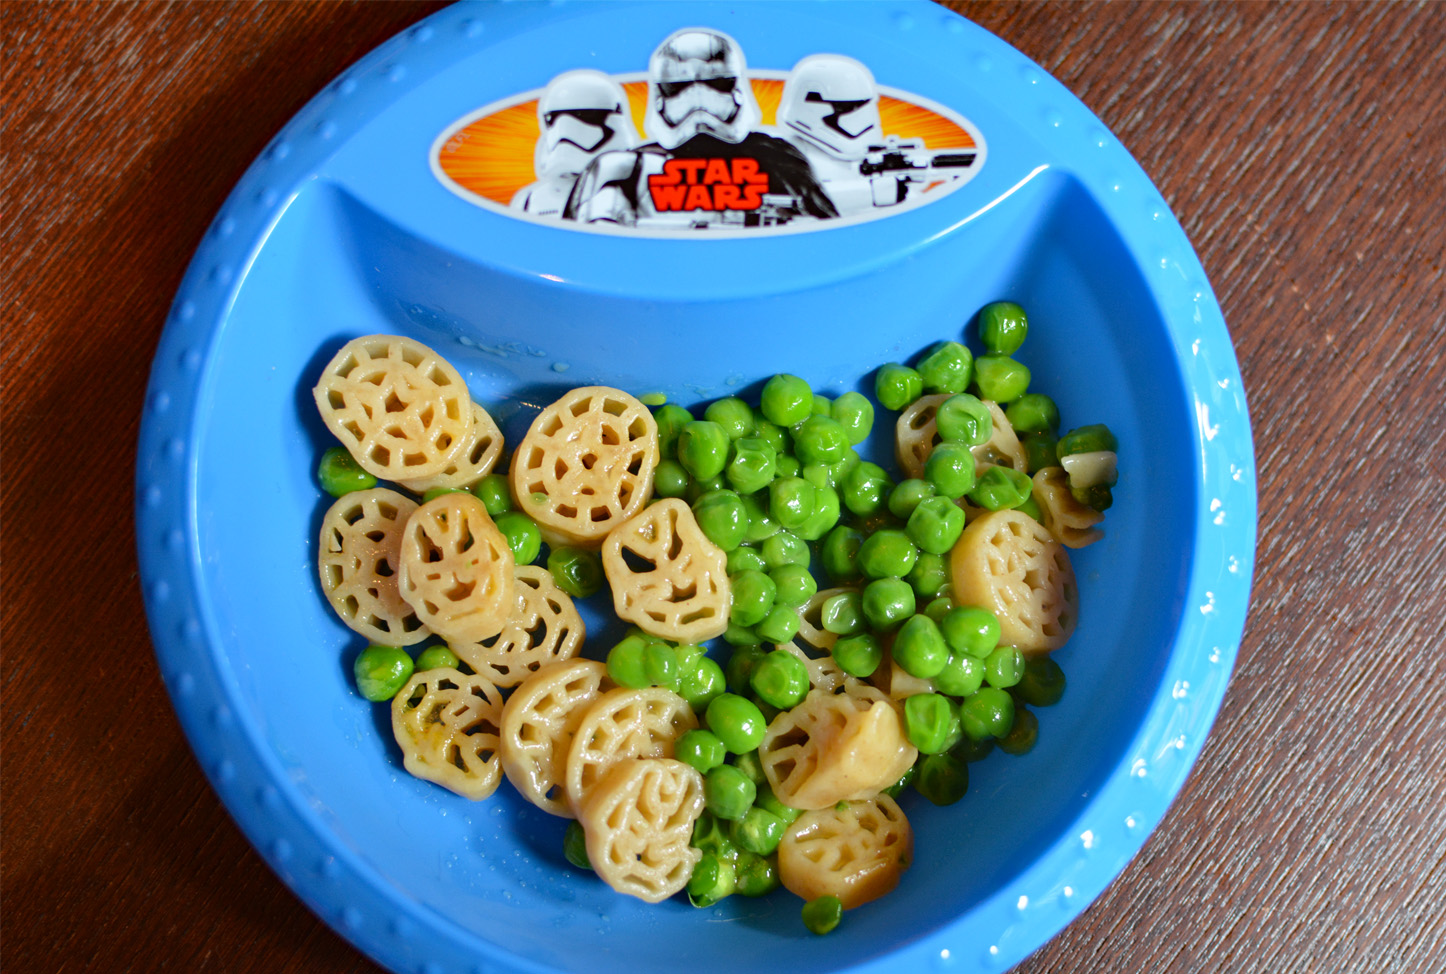 star-wars-birds-eye-veggies